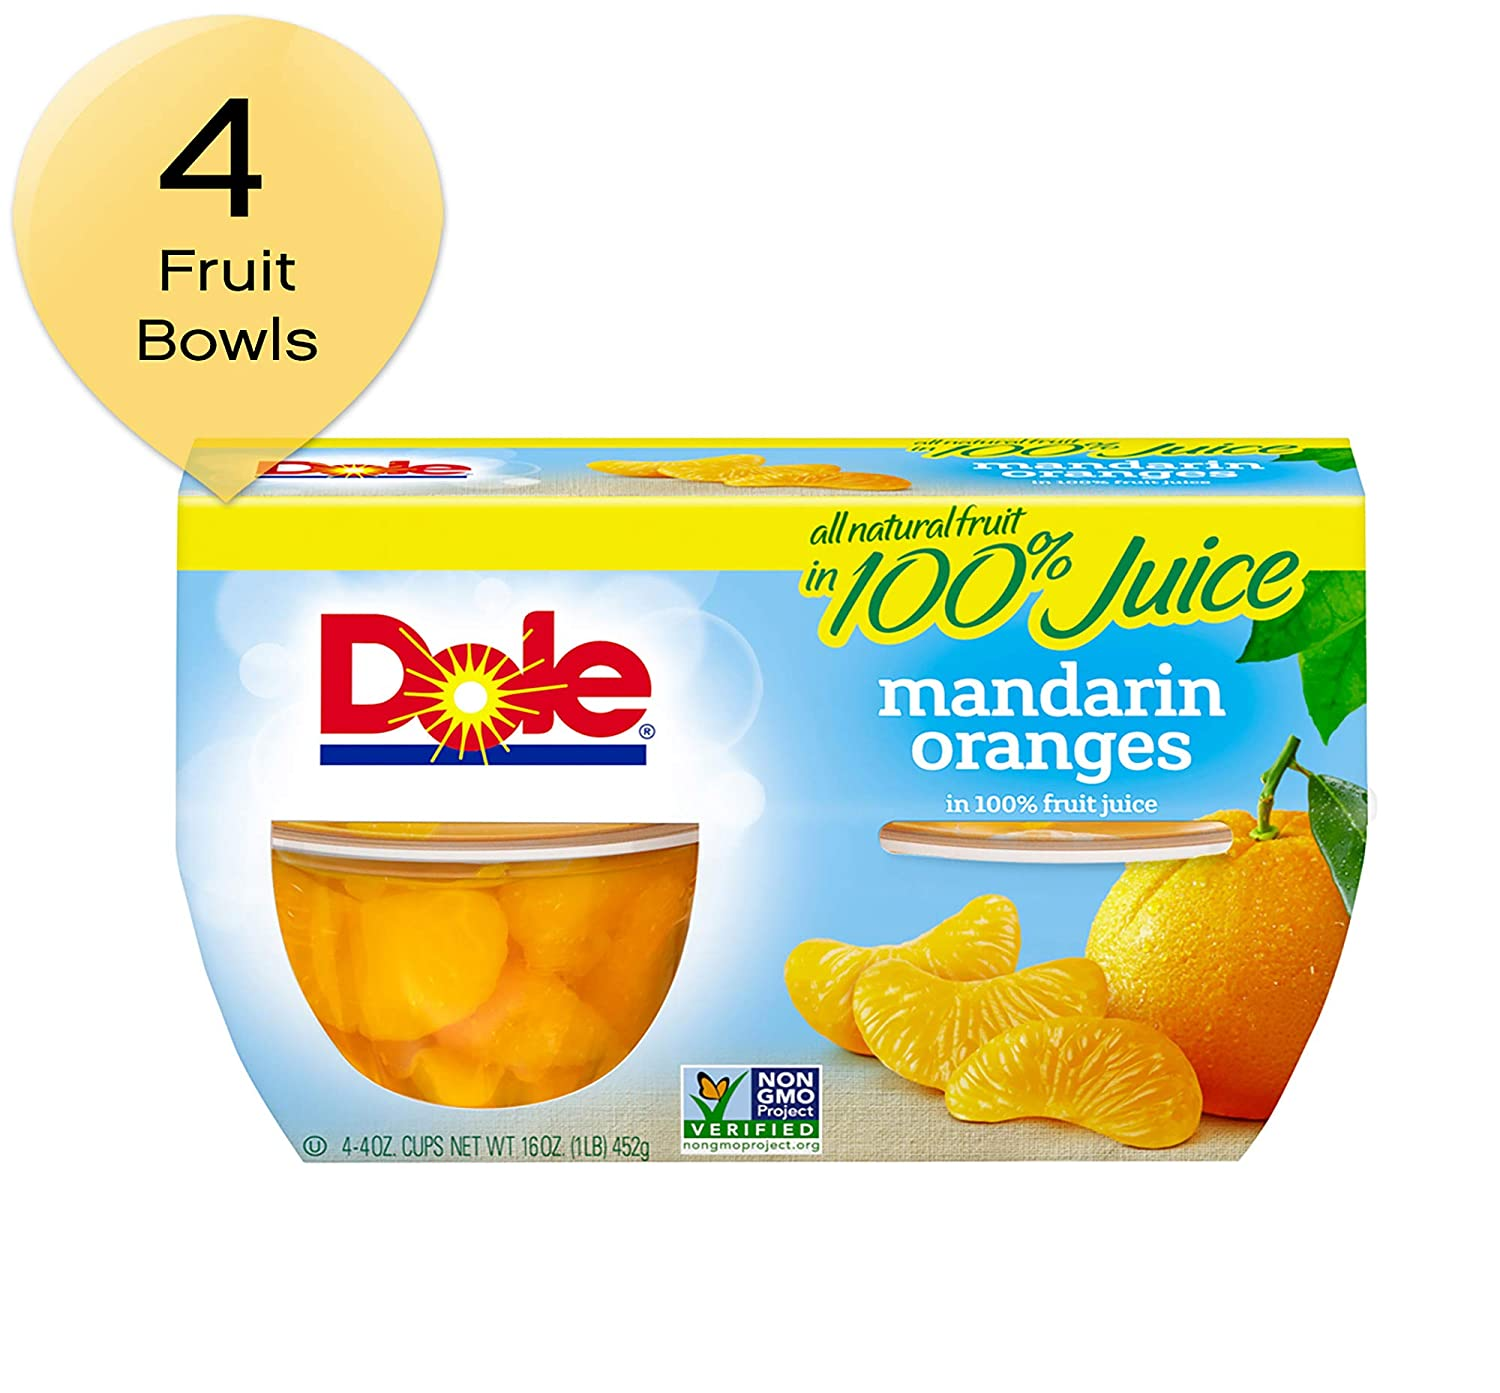 DOLE FRUIT BOWLS, Mandarin Oranges in 100% Fruit Juice, 4 Ounce (4 Cups)